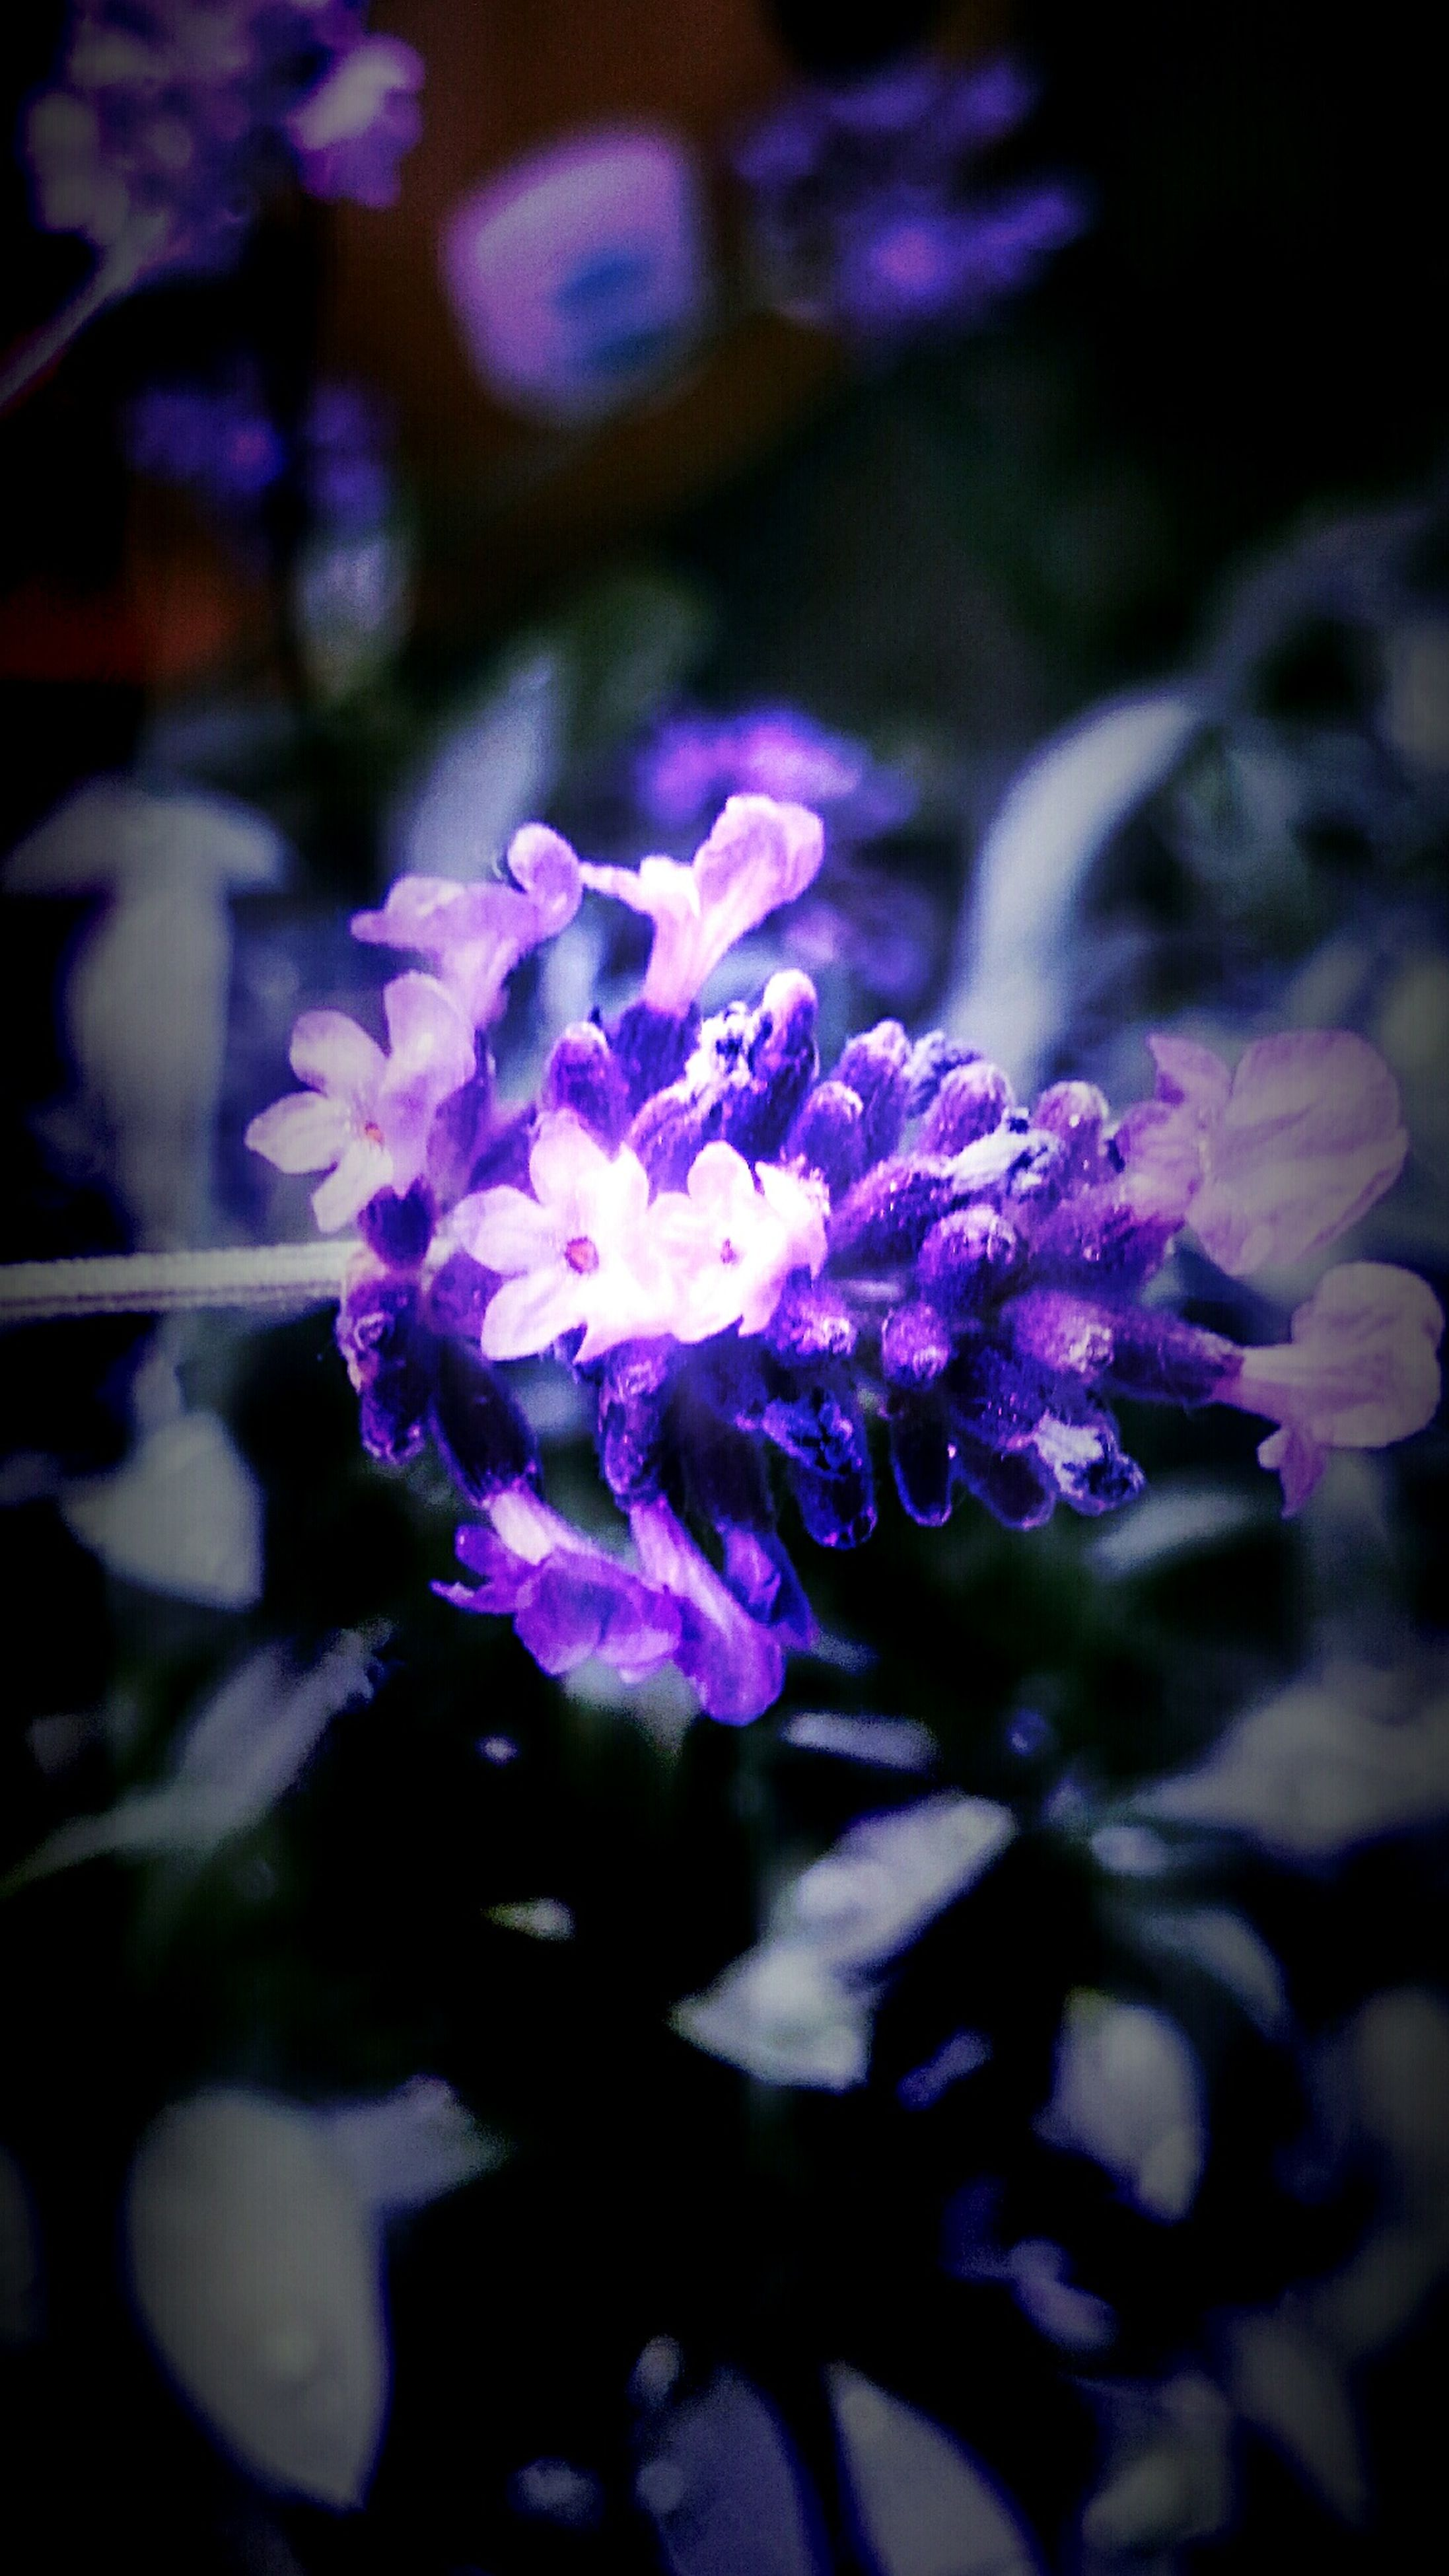 flower, freshness, fragility, petal, growth, flower head, beauty in nature, close-up, purple, focus on foreground, nature, blooming, pink color, plant, in bloom, selective focus, blossom, outdoors, no people, park - man made space